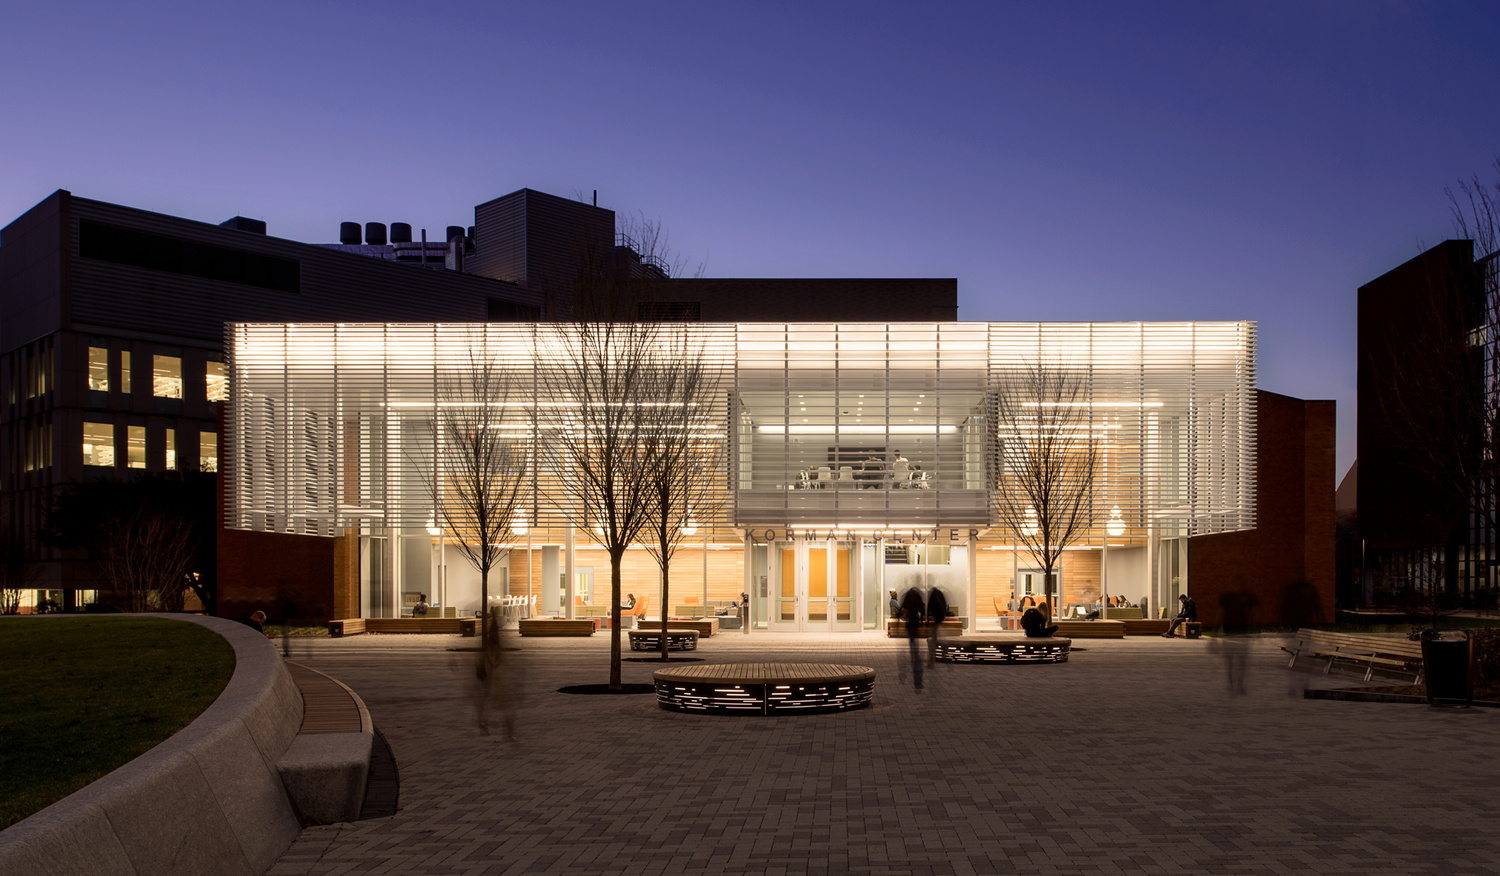 Korman Center, view from quad, dusk by Graham Hebel